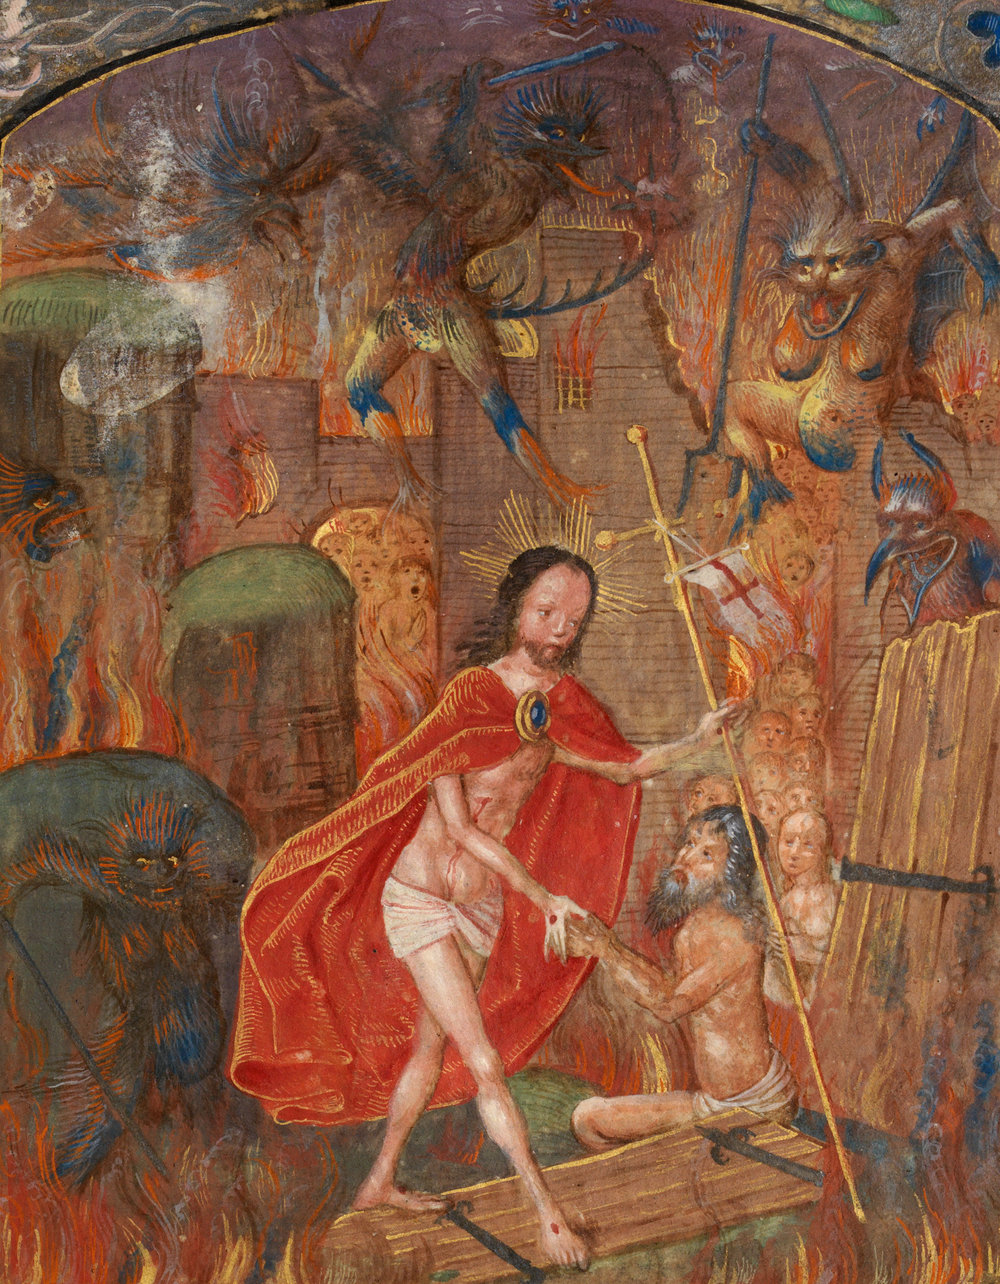 HARROWING OF HELL - Circa 1503-4